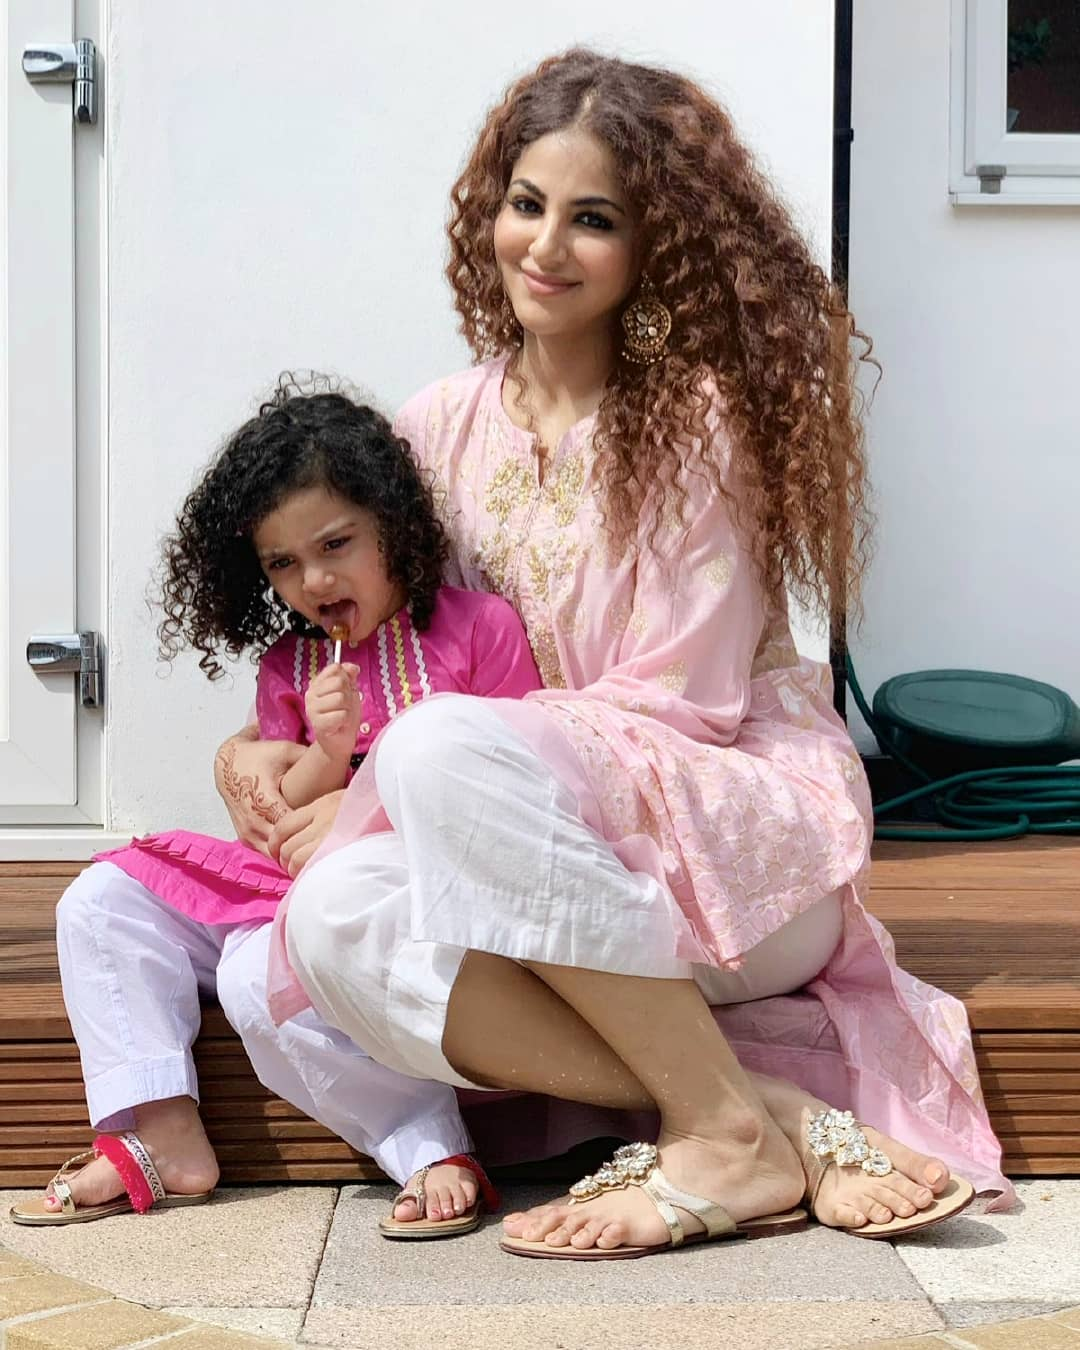 Annie Khalid Pakistani Female Singer Images with her Daughter Isha (11)